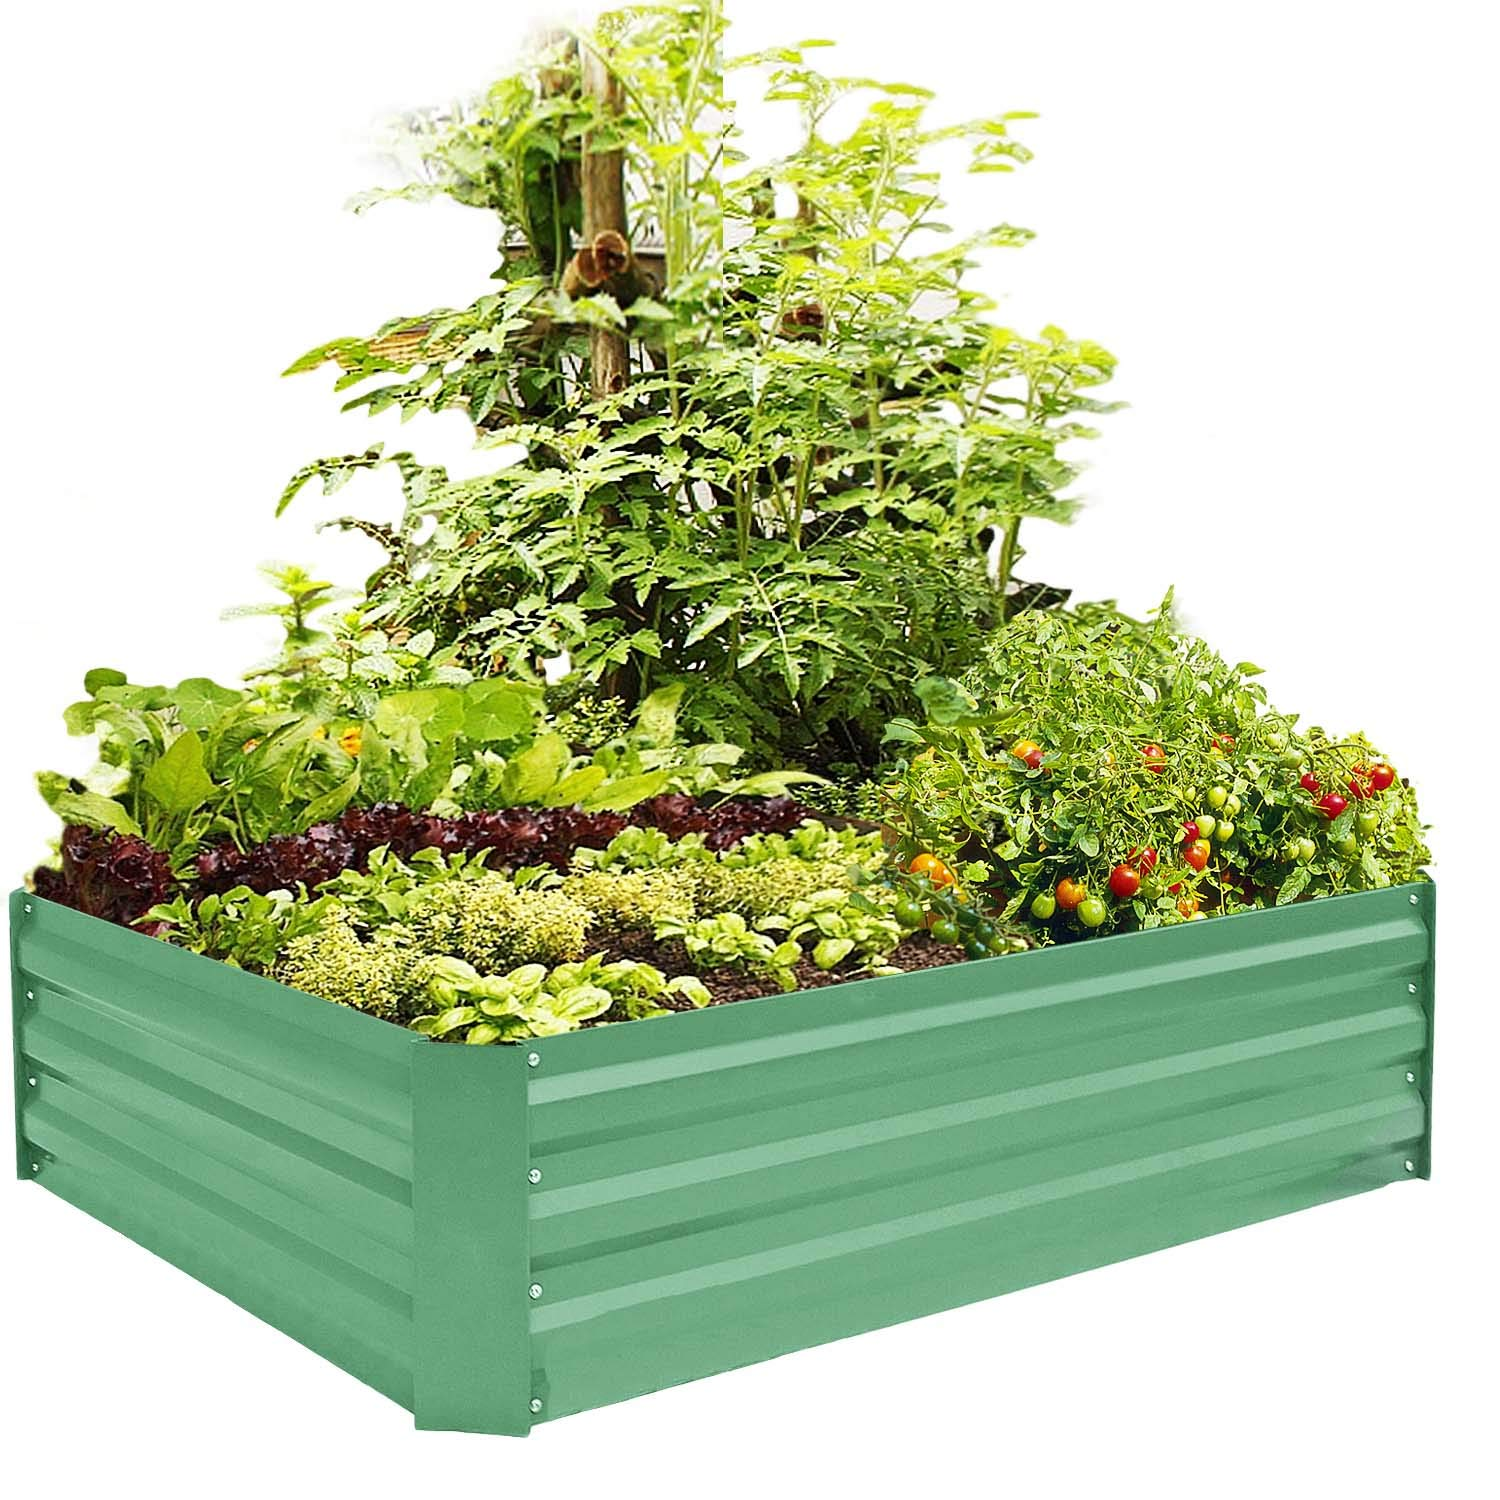 FOYUEE Metal Raised Garden Bed Kit Elevated Planter Box Outdoor Patio Frame for Vegetables 4' x 3' x 1', Green by FOYUEE